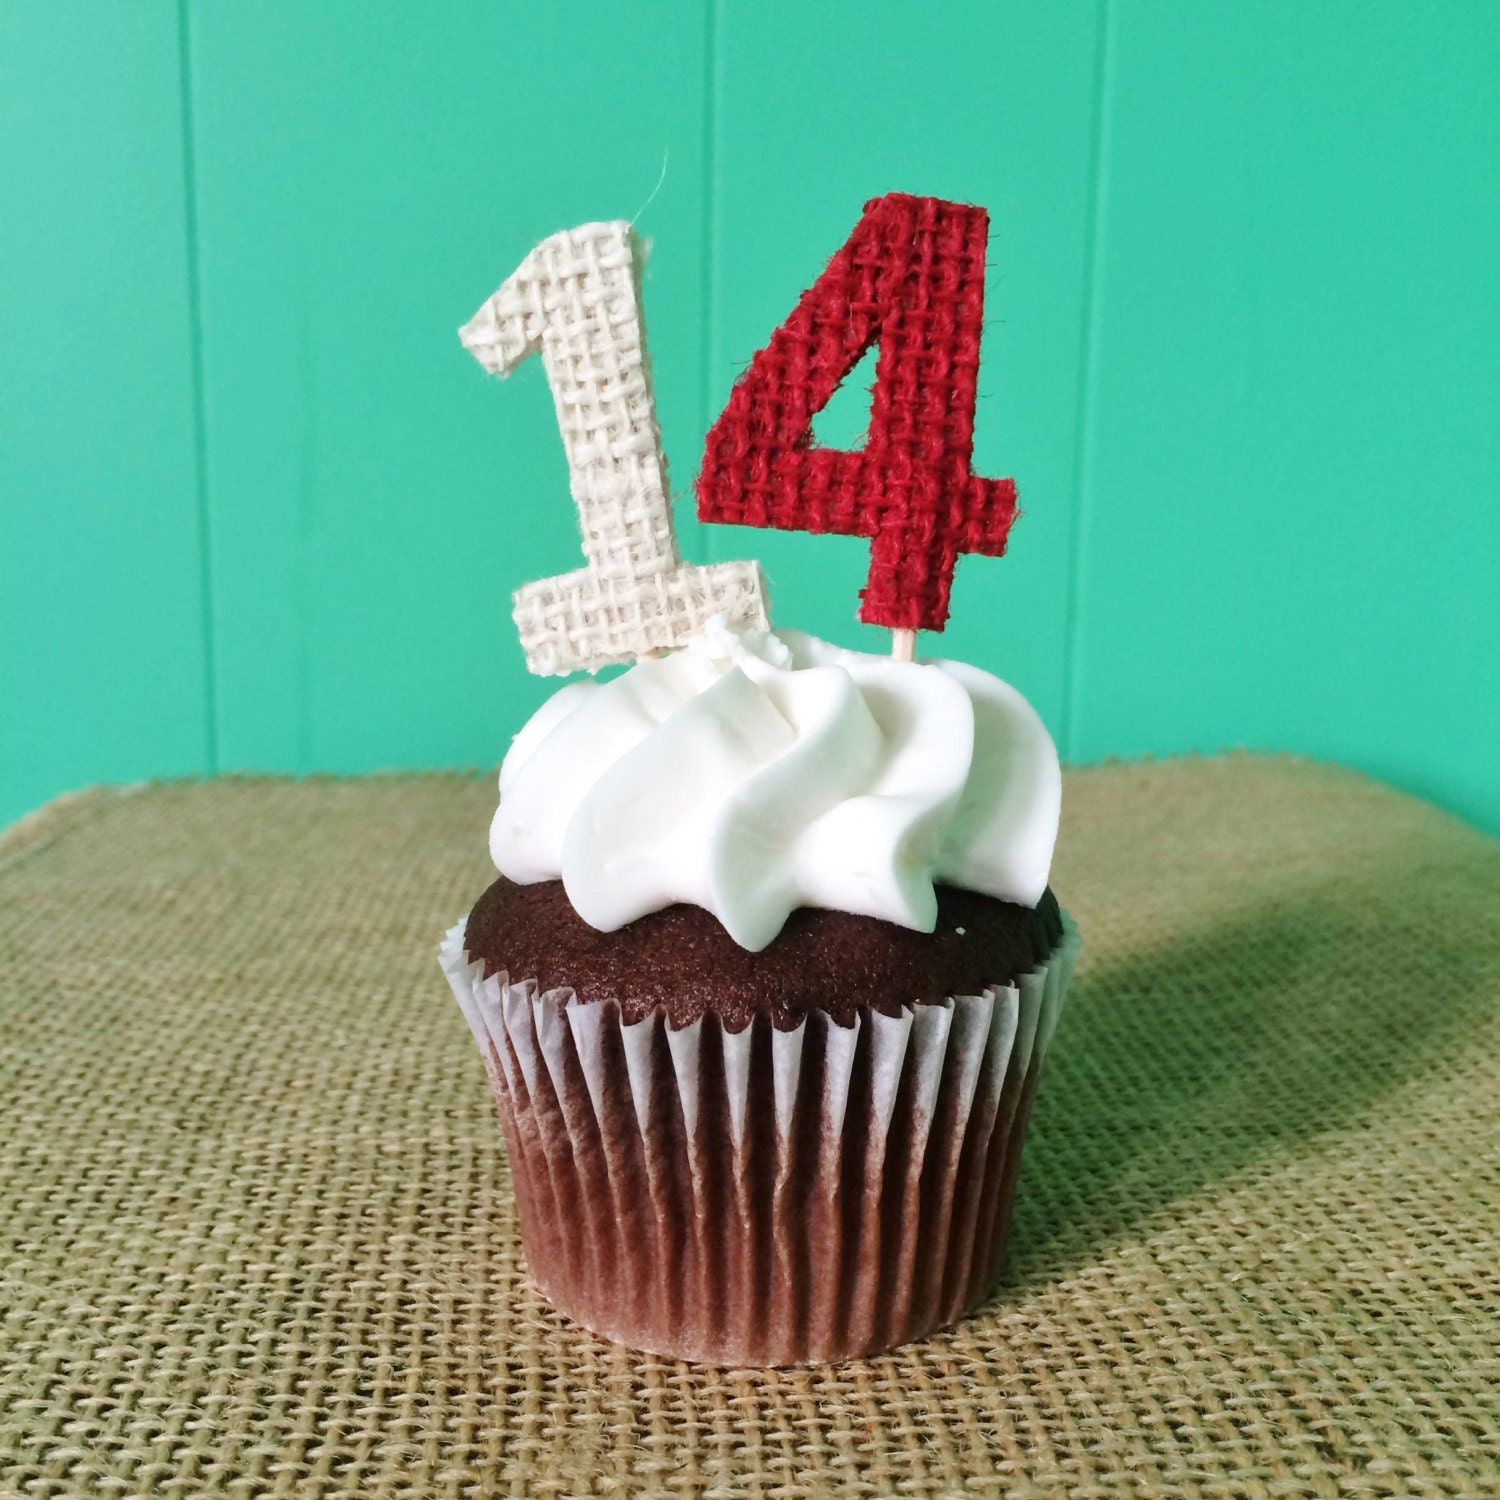 Set Of 12 Burlap Number Cupcake Toppers Choose Your Numbers Colors Rustic Country Shabby Chic Birthday Anniversary Wedding